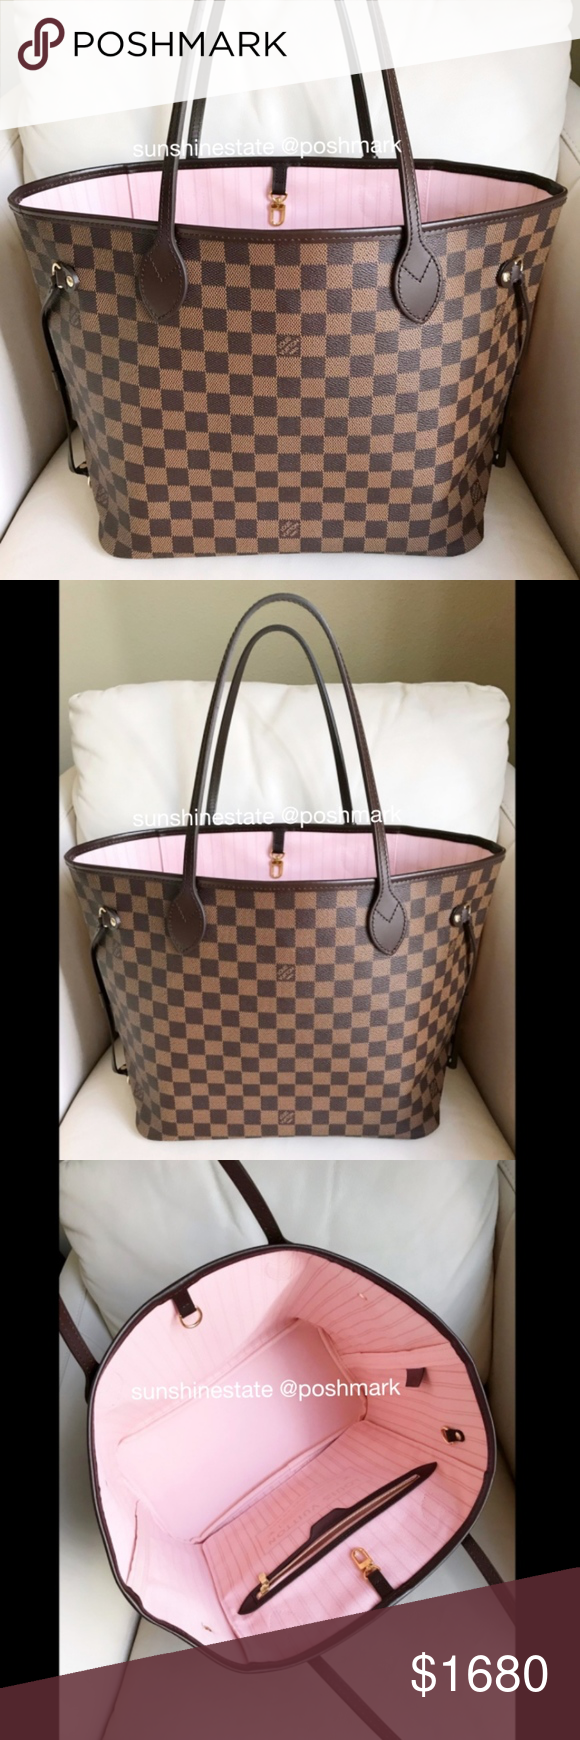 Authentic Louis Vuitton Neverfull MM Damier Ebene 100% Authentic LV  Neverfull MM Damier Ebene Rose Balleriene lining. Pouch is not included. 998e5c9139